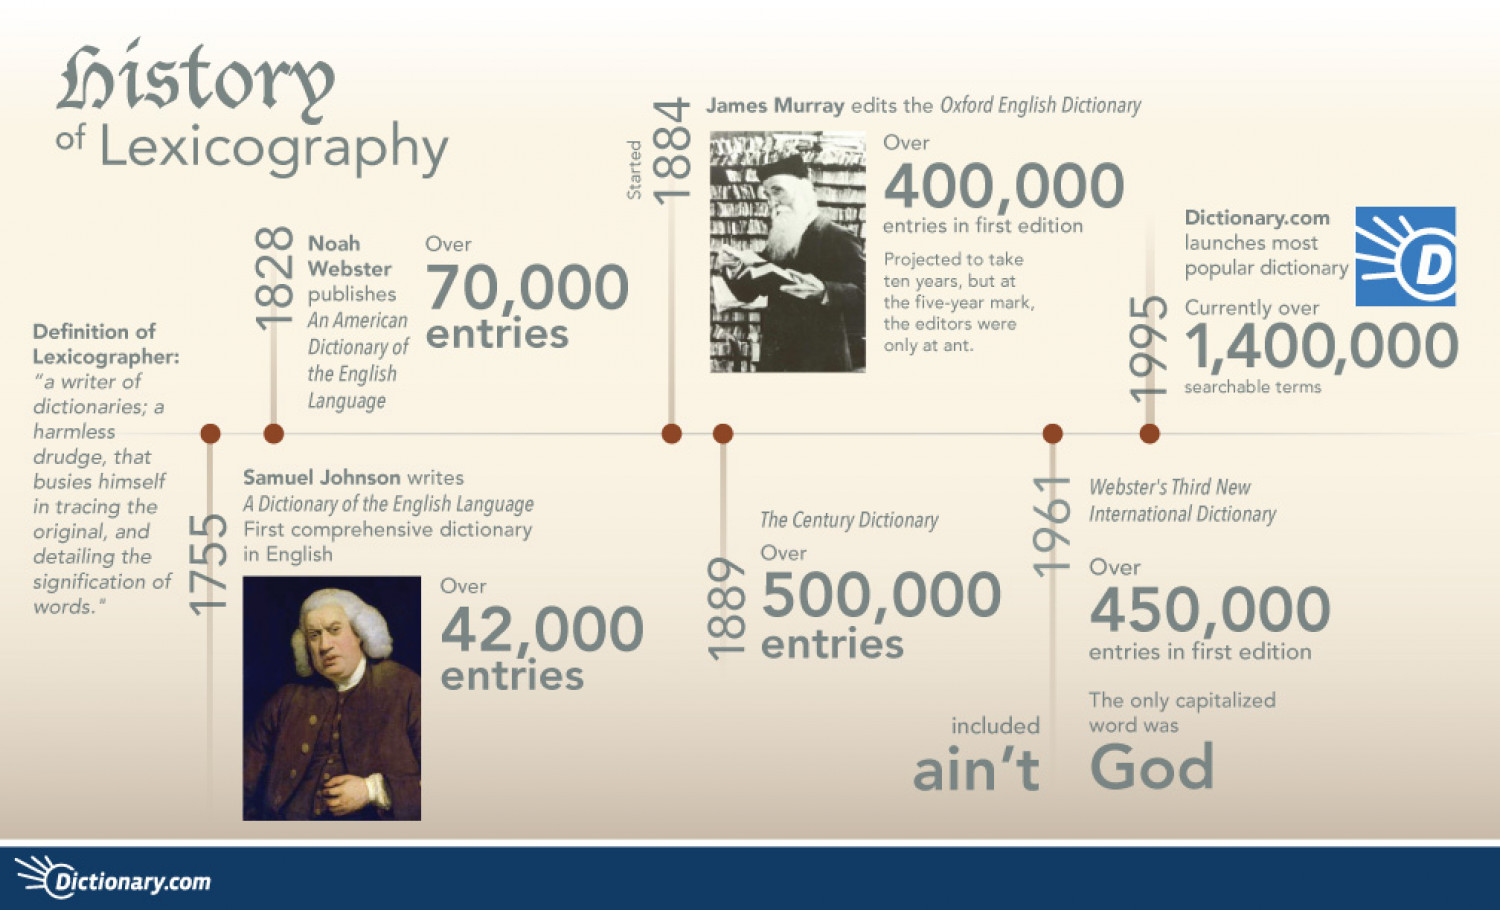 History of Lexicography Infographic